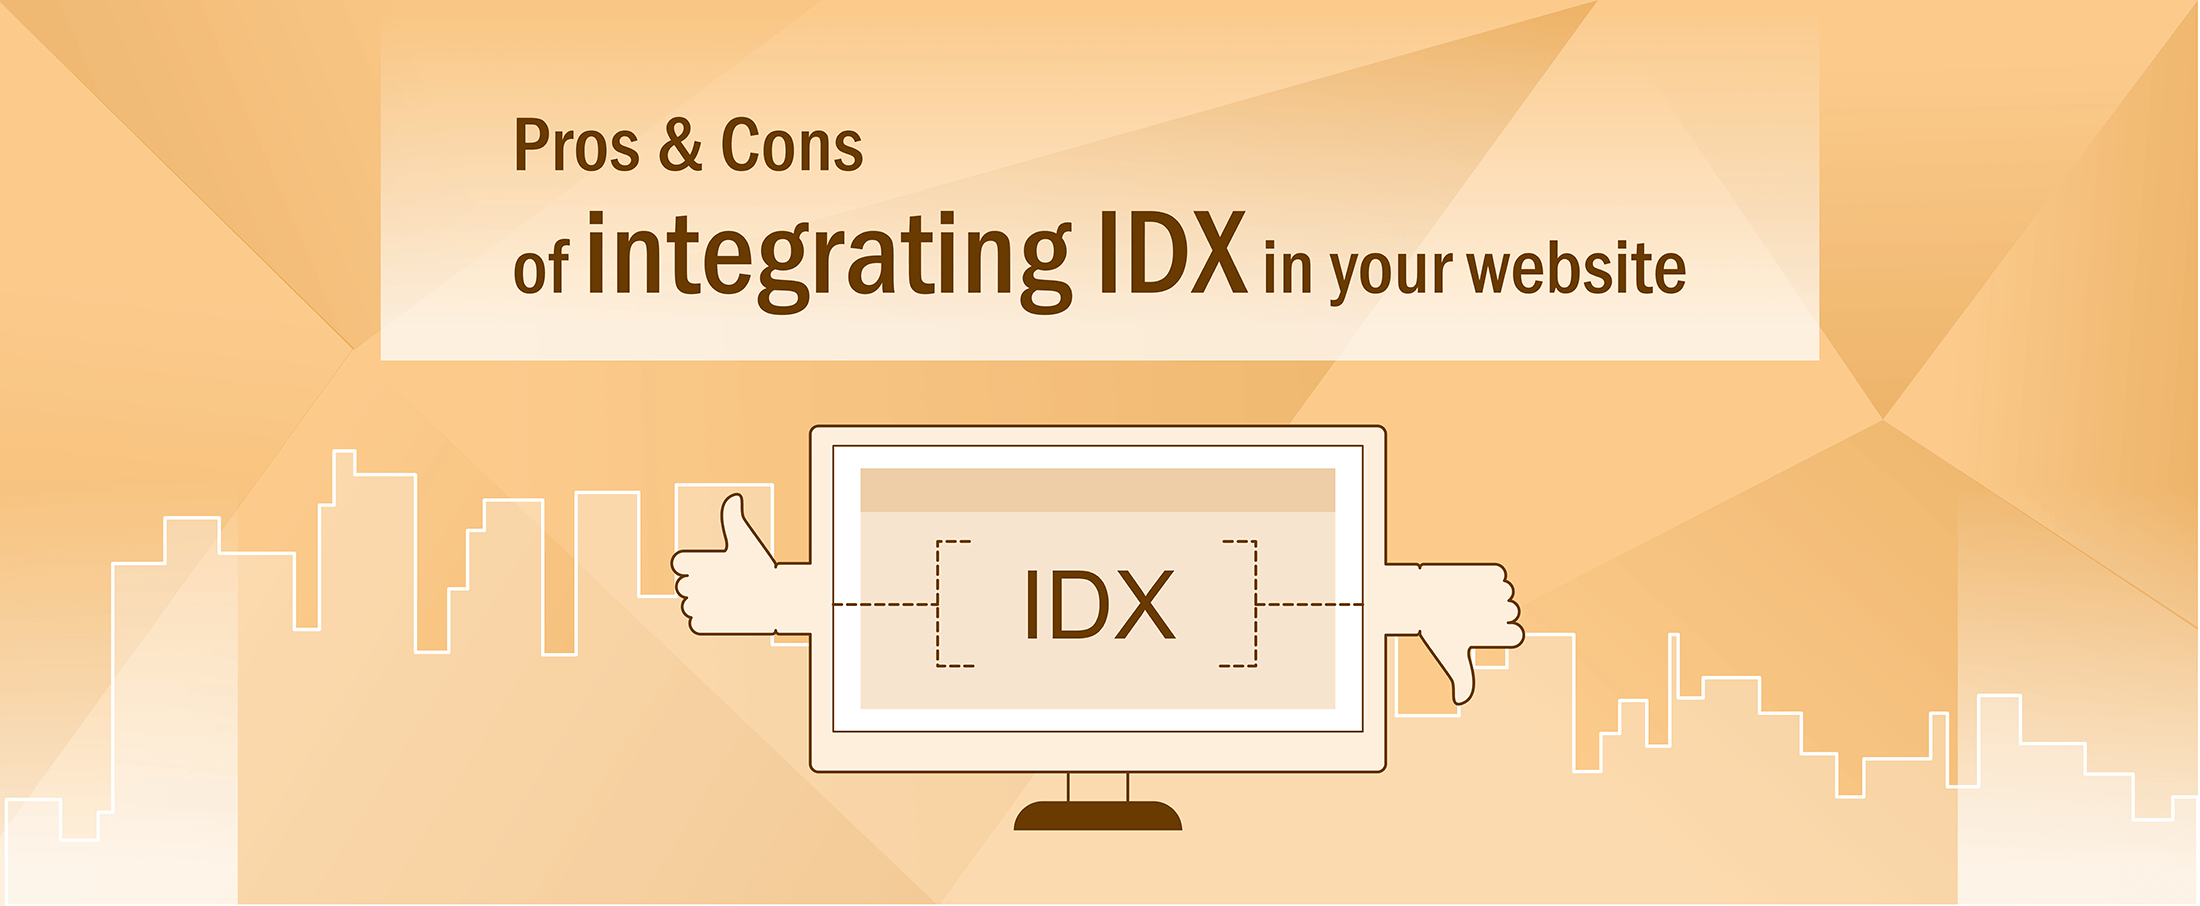 Pros & Cons of integrating IDX in your website